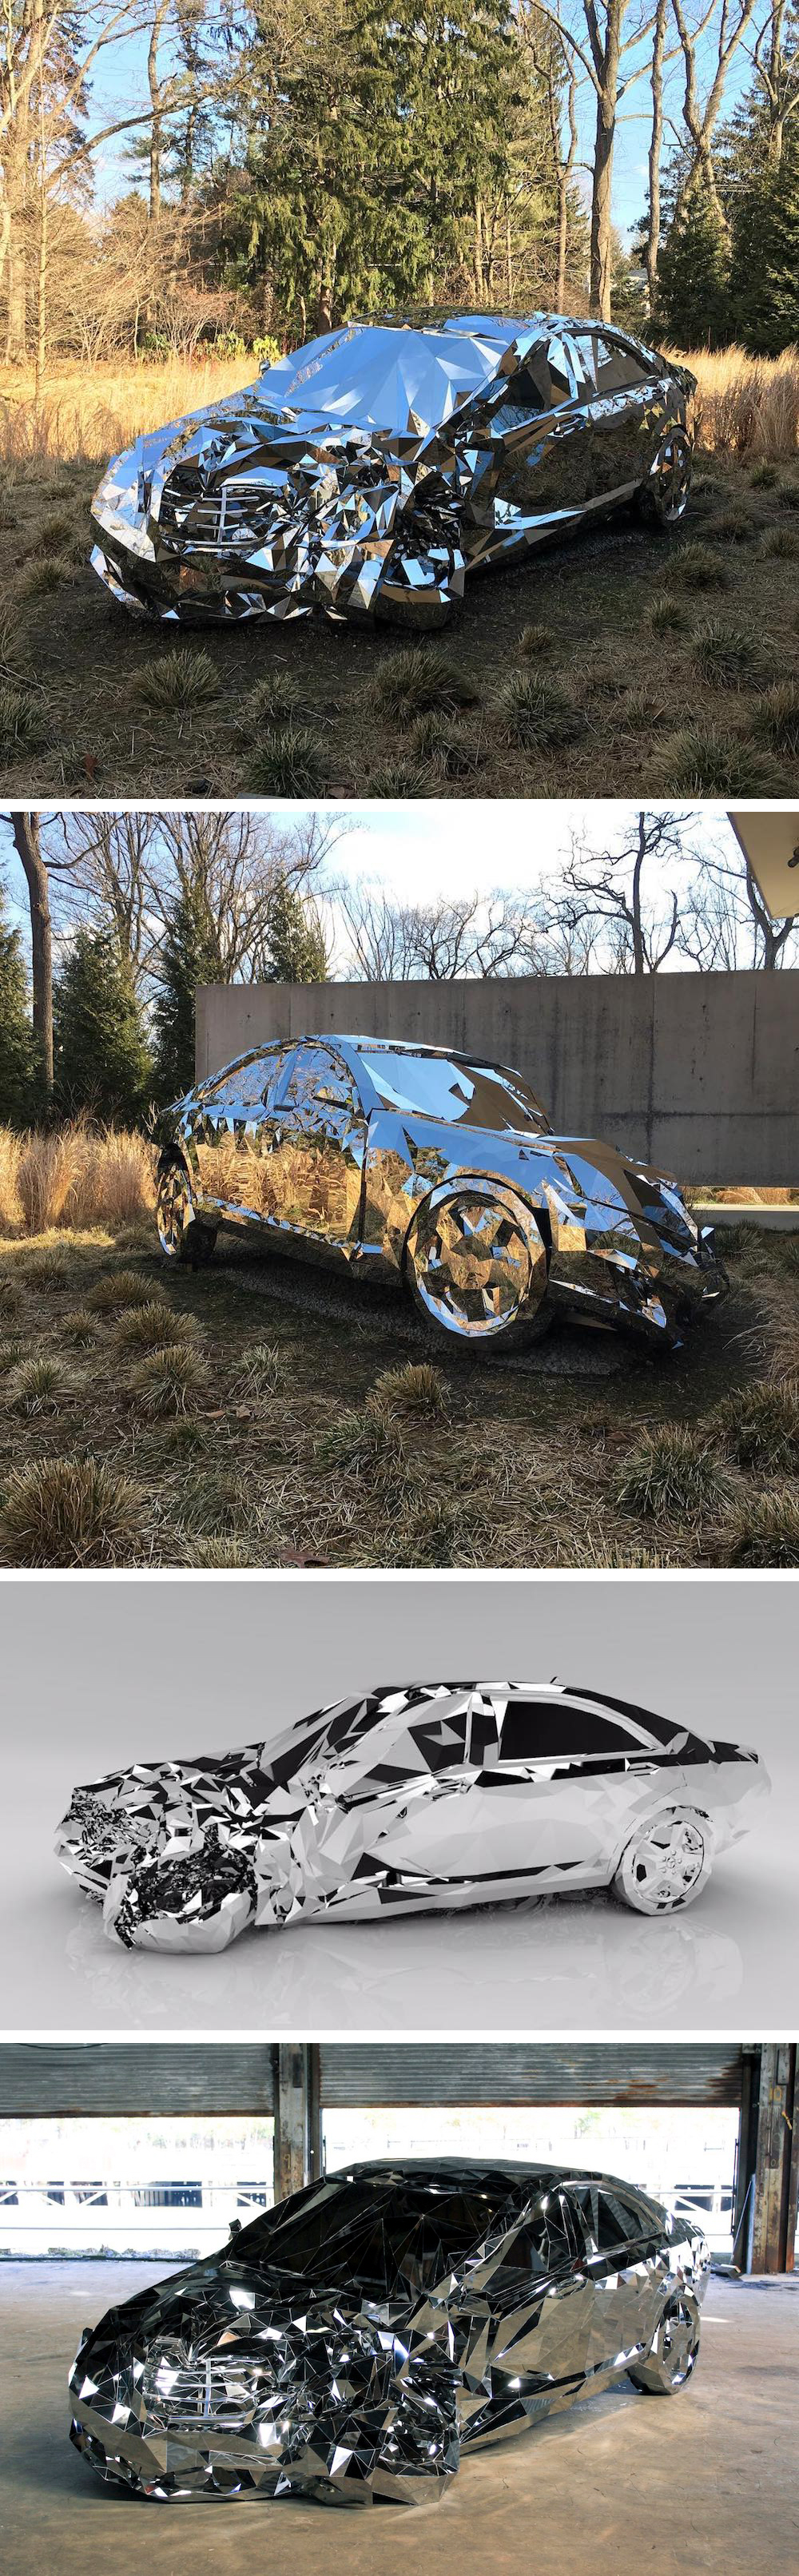 A Wrecked Luxury Car Built From Over Reflective Steel Parts - Artist builds a luxury car made from 12000 pieces of reflective steel